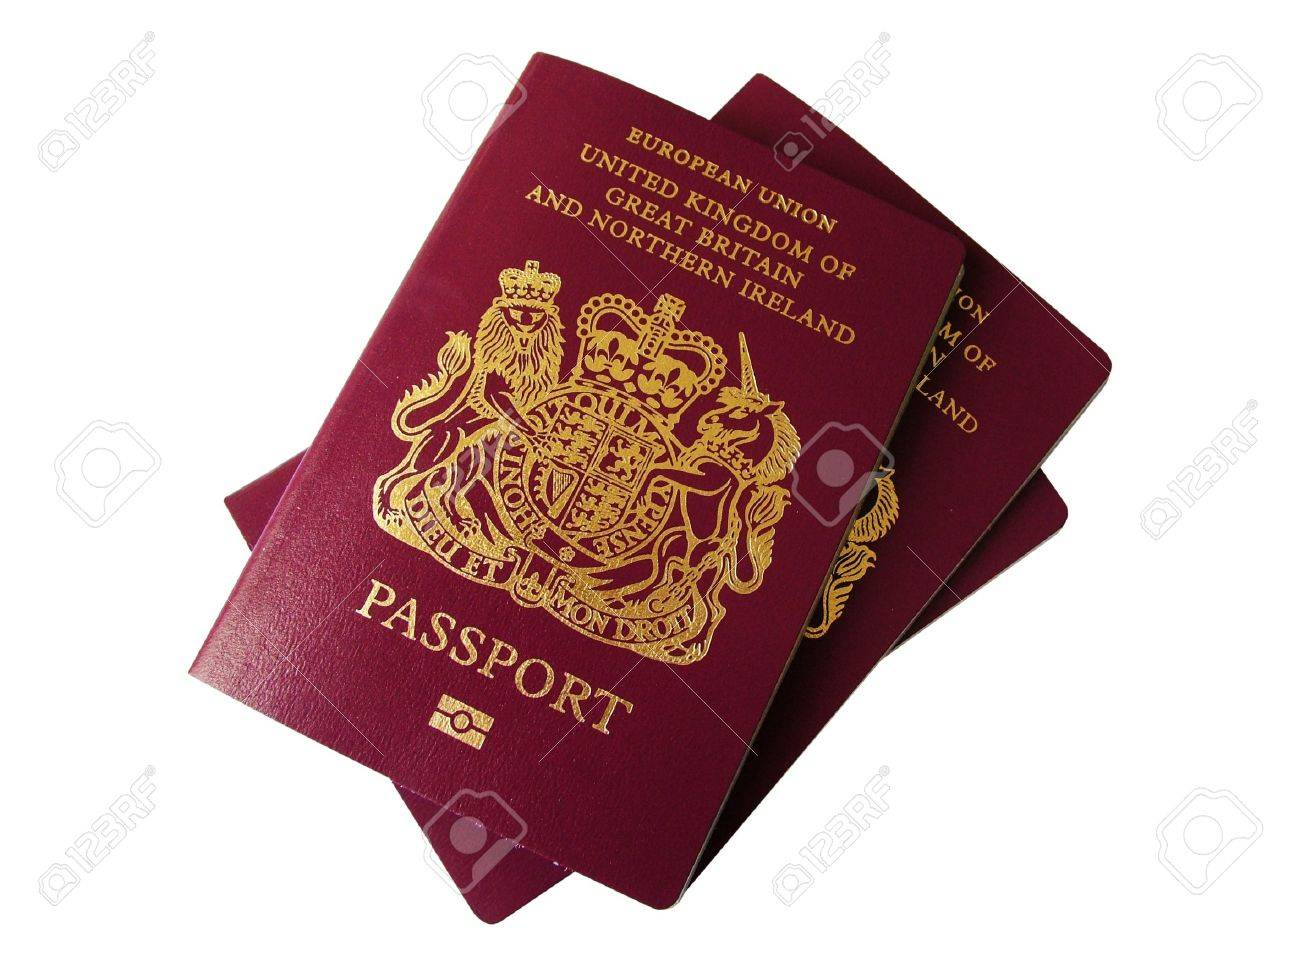 UK Passport Clip Art